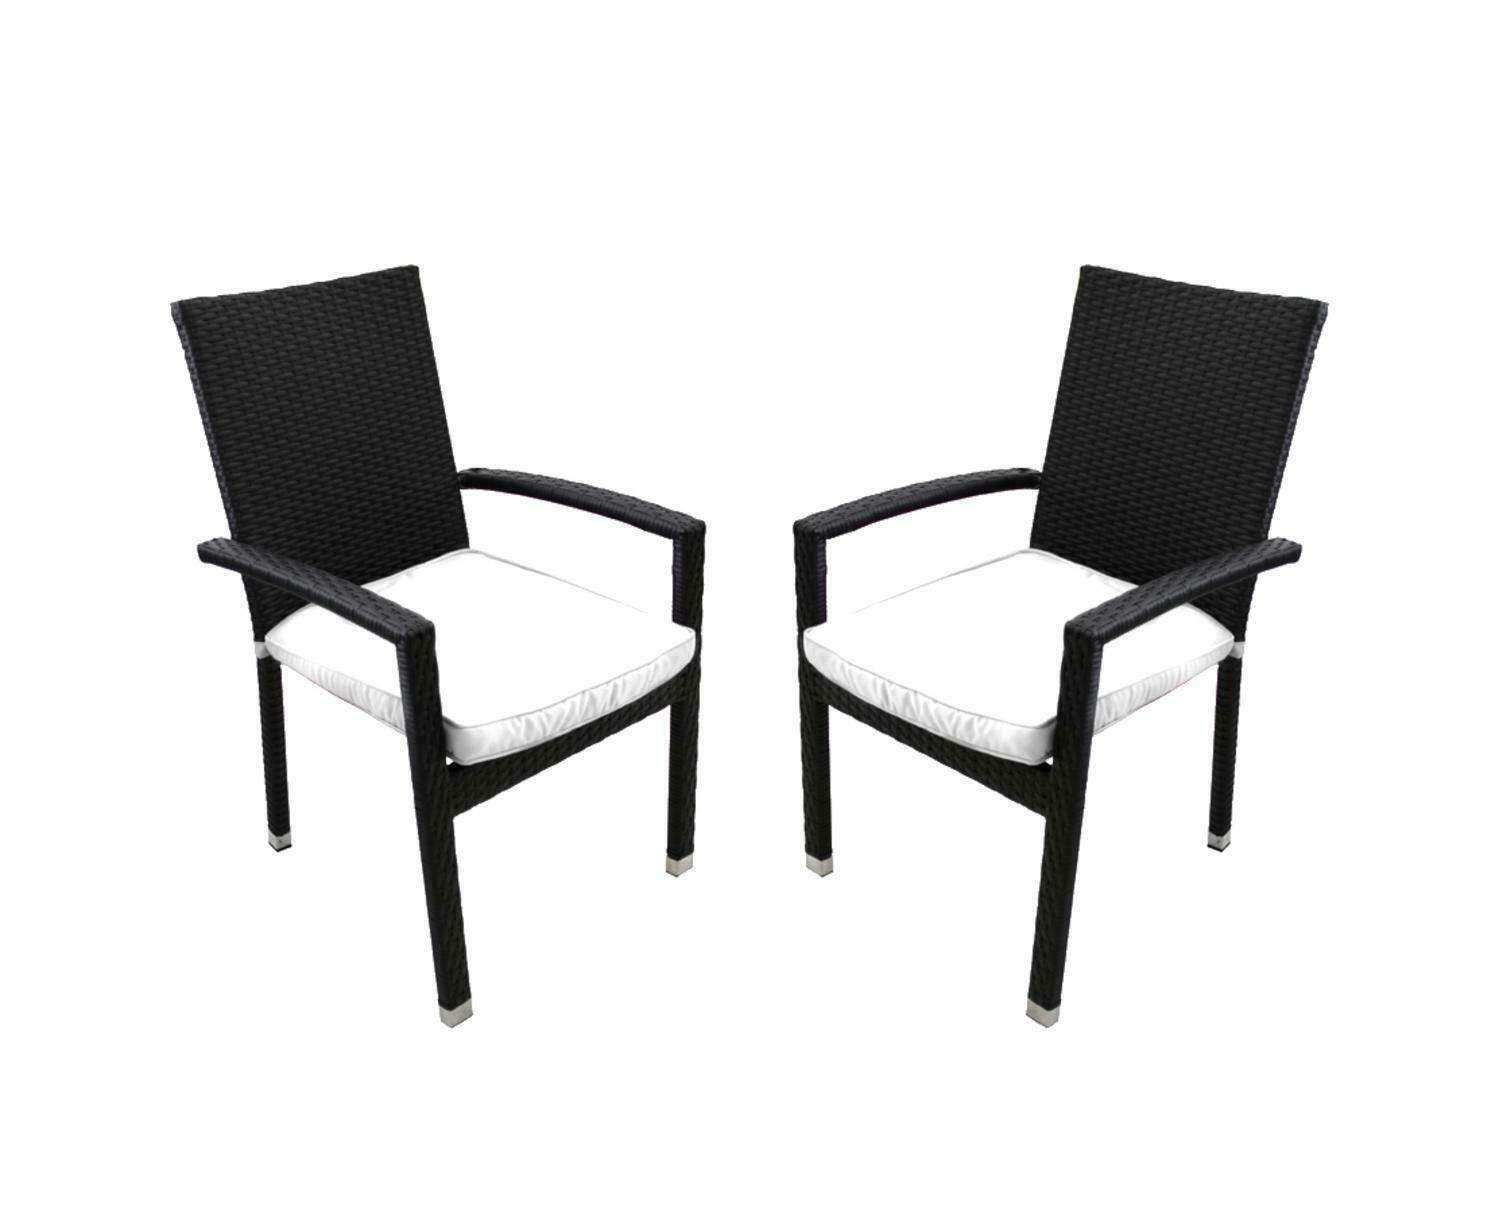 CC Outdoor Living 2 Black Wicker Patio Furniture Dining Chairs White Cushions